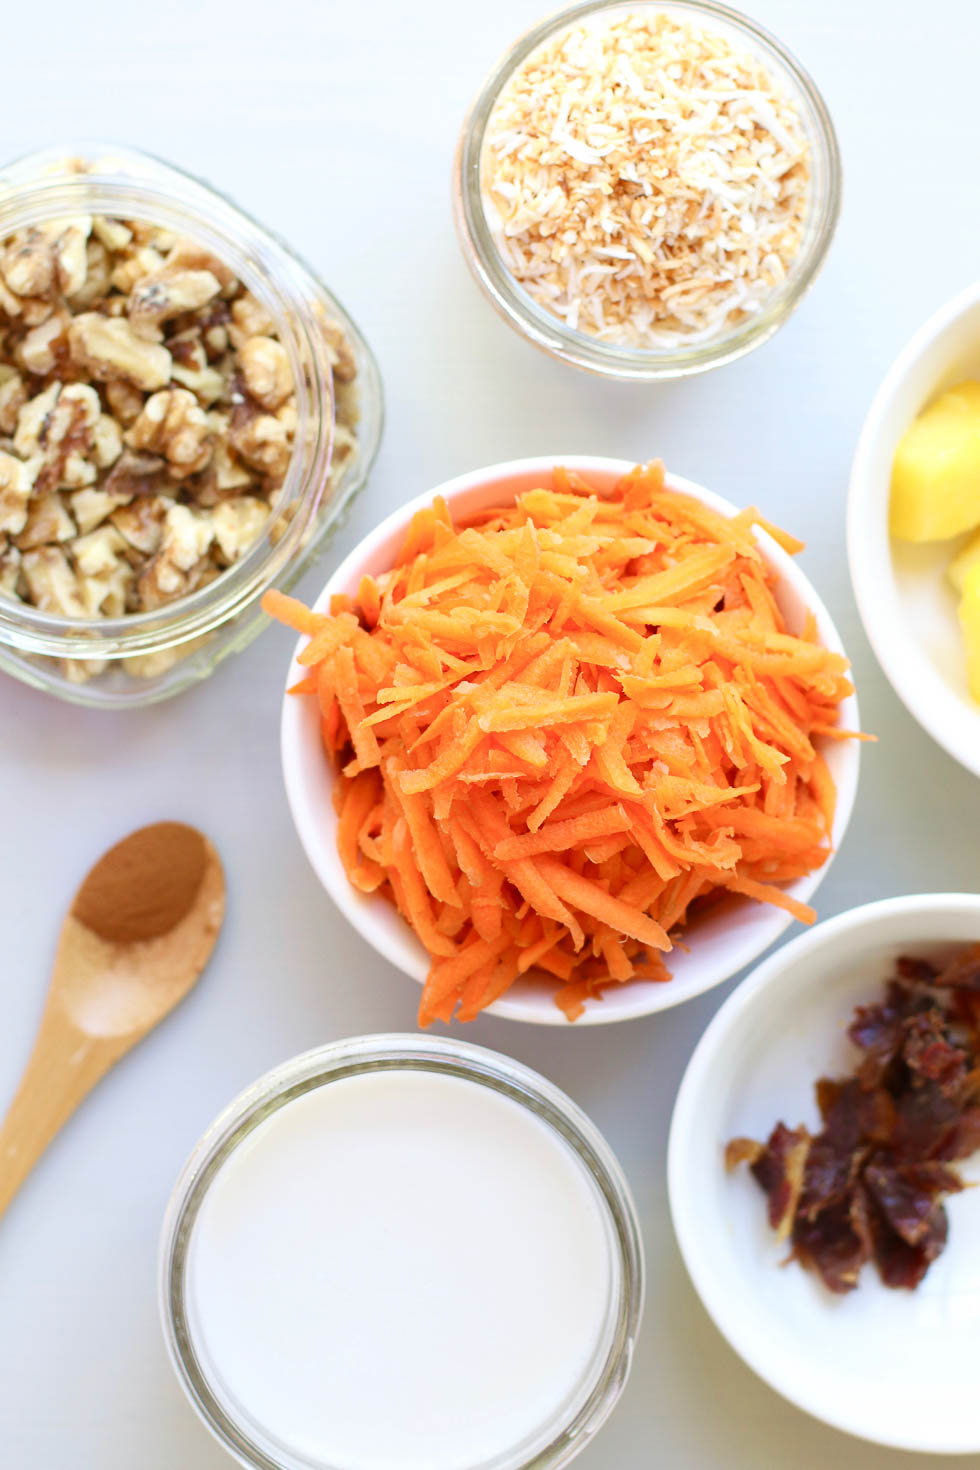 Carrot Pineapple Smoothie Ingredients